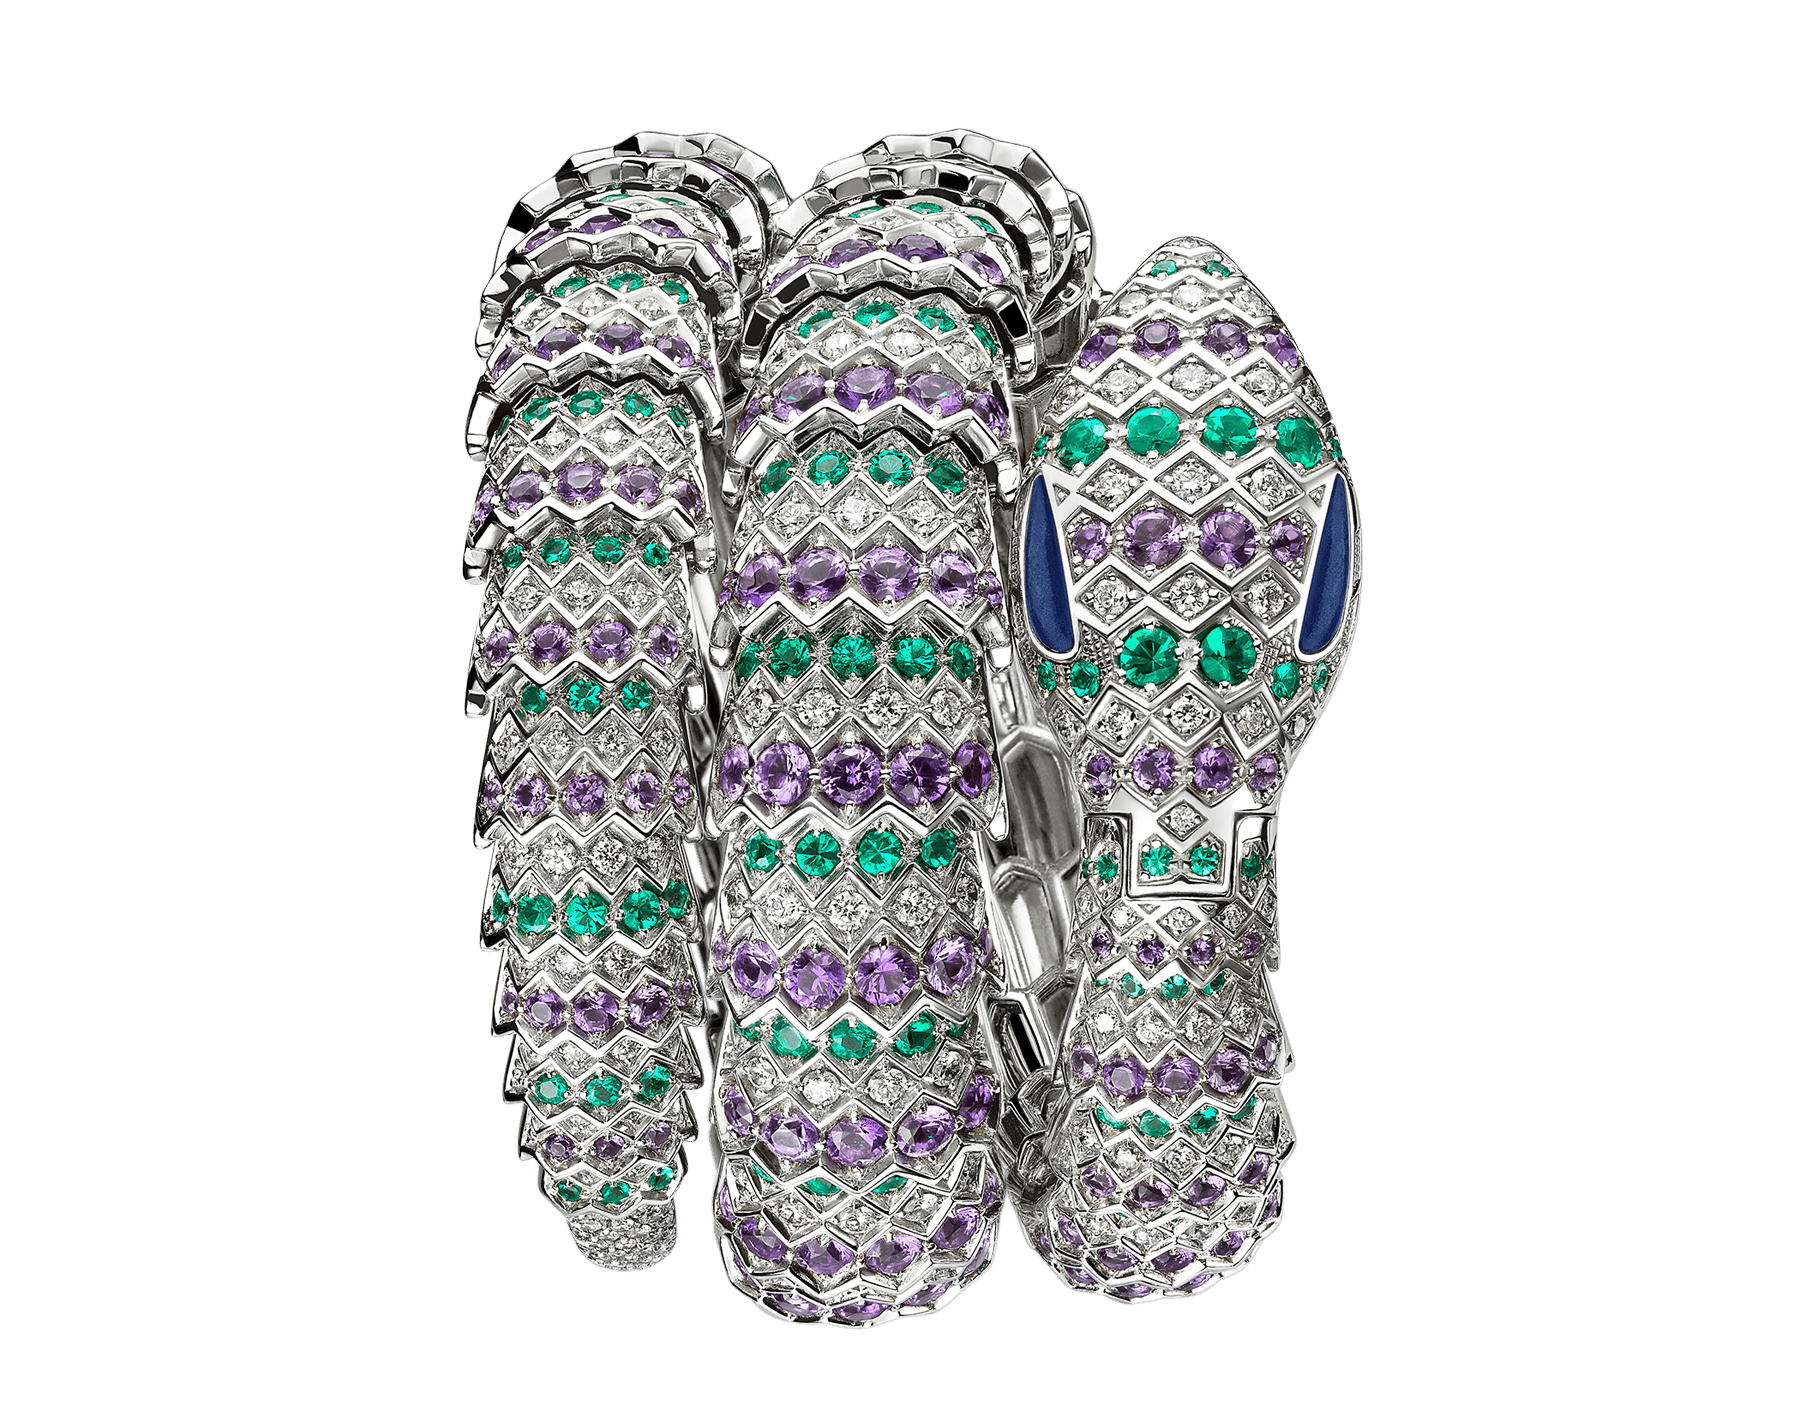 Serpenti Secret Watch with 18 kt white gold head set with brilliant cut diamonds, amethysts emeralds and malachite eyes, 18 kt white gold case, 18 kt white gold dial and double spiral bracelet, both set with brilliant cut diamonds, amethysts and emeralds. 101864 image 1